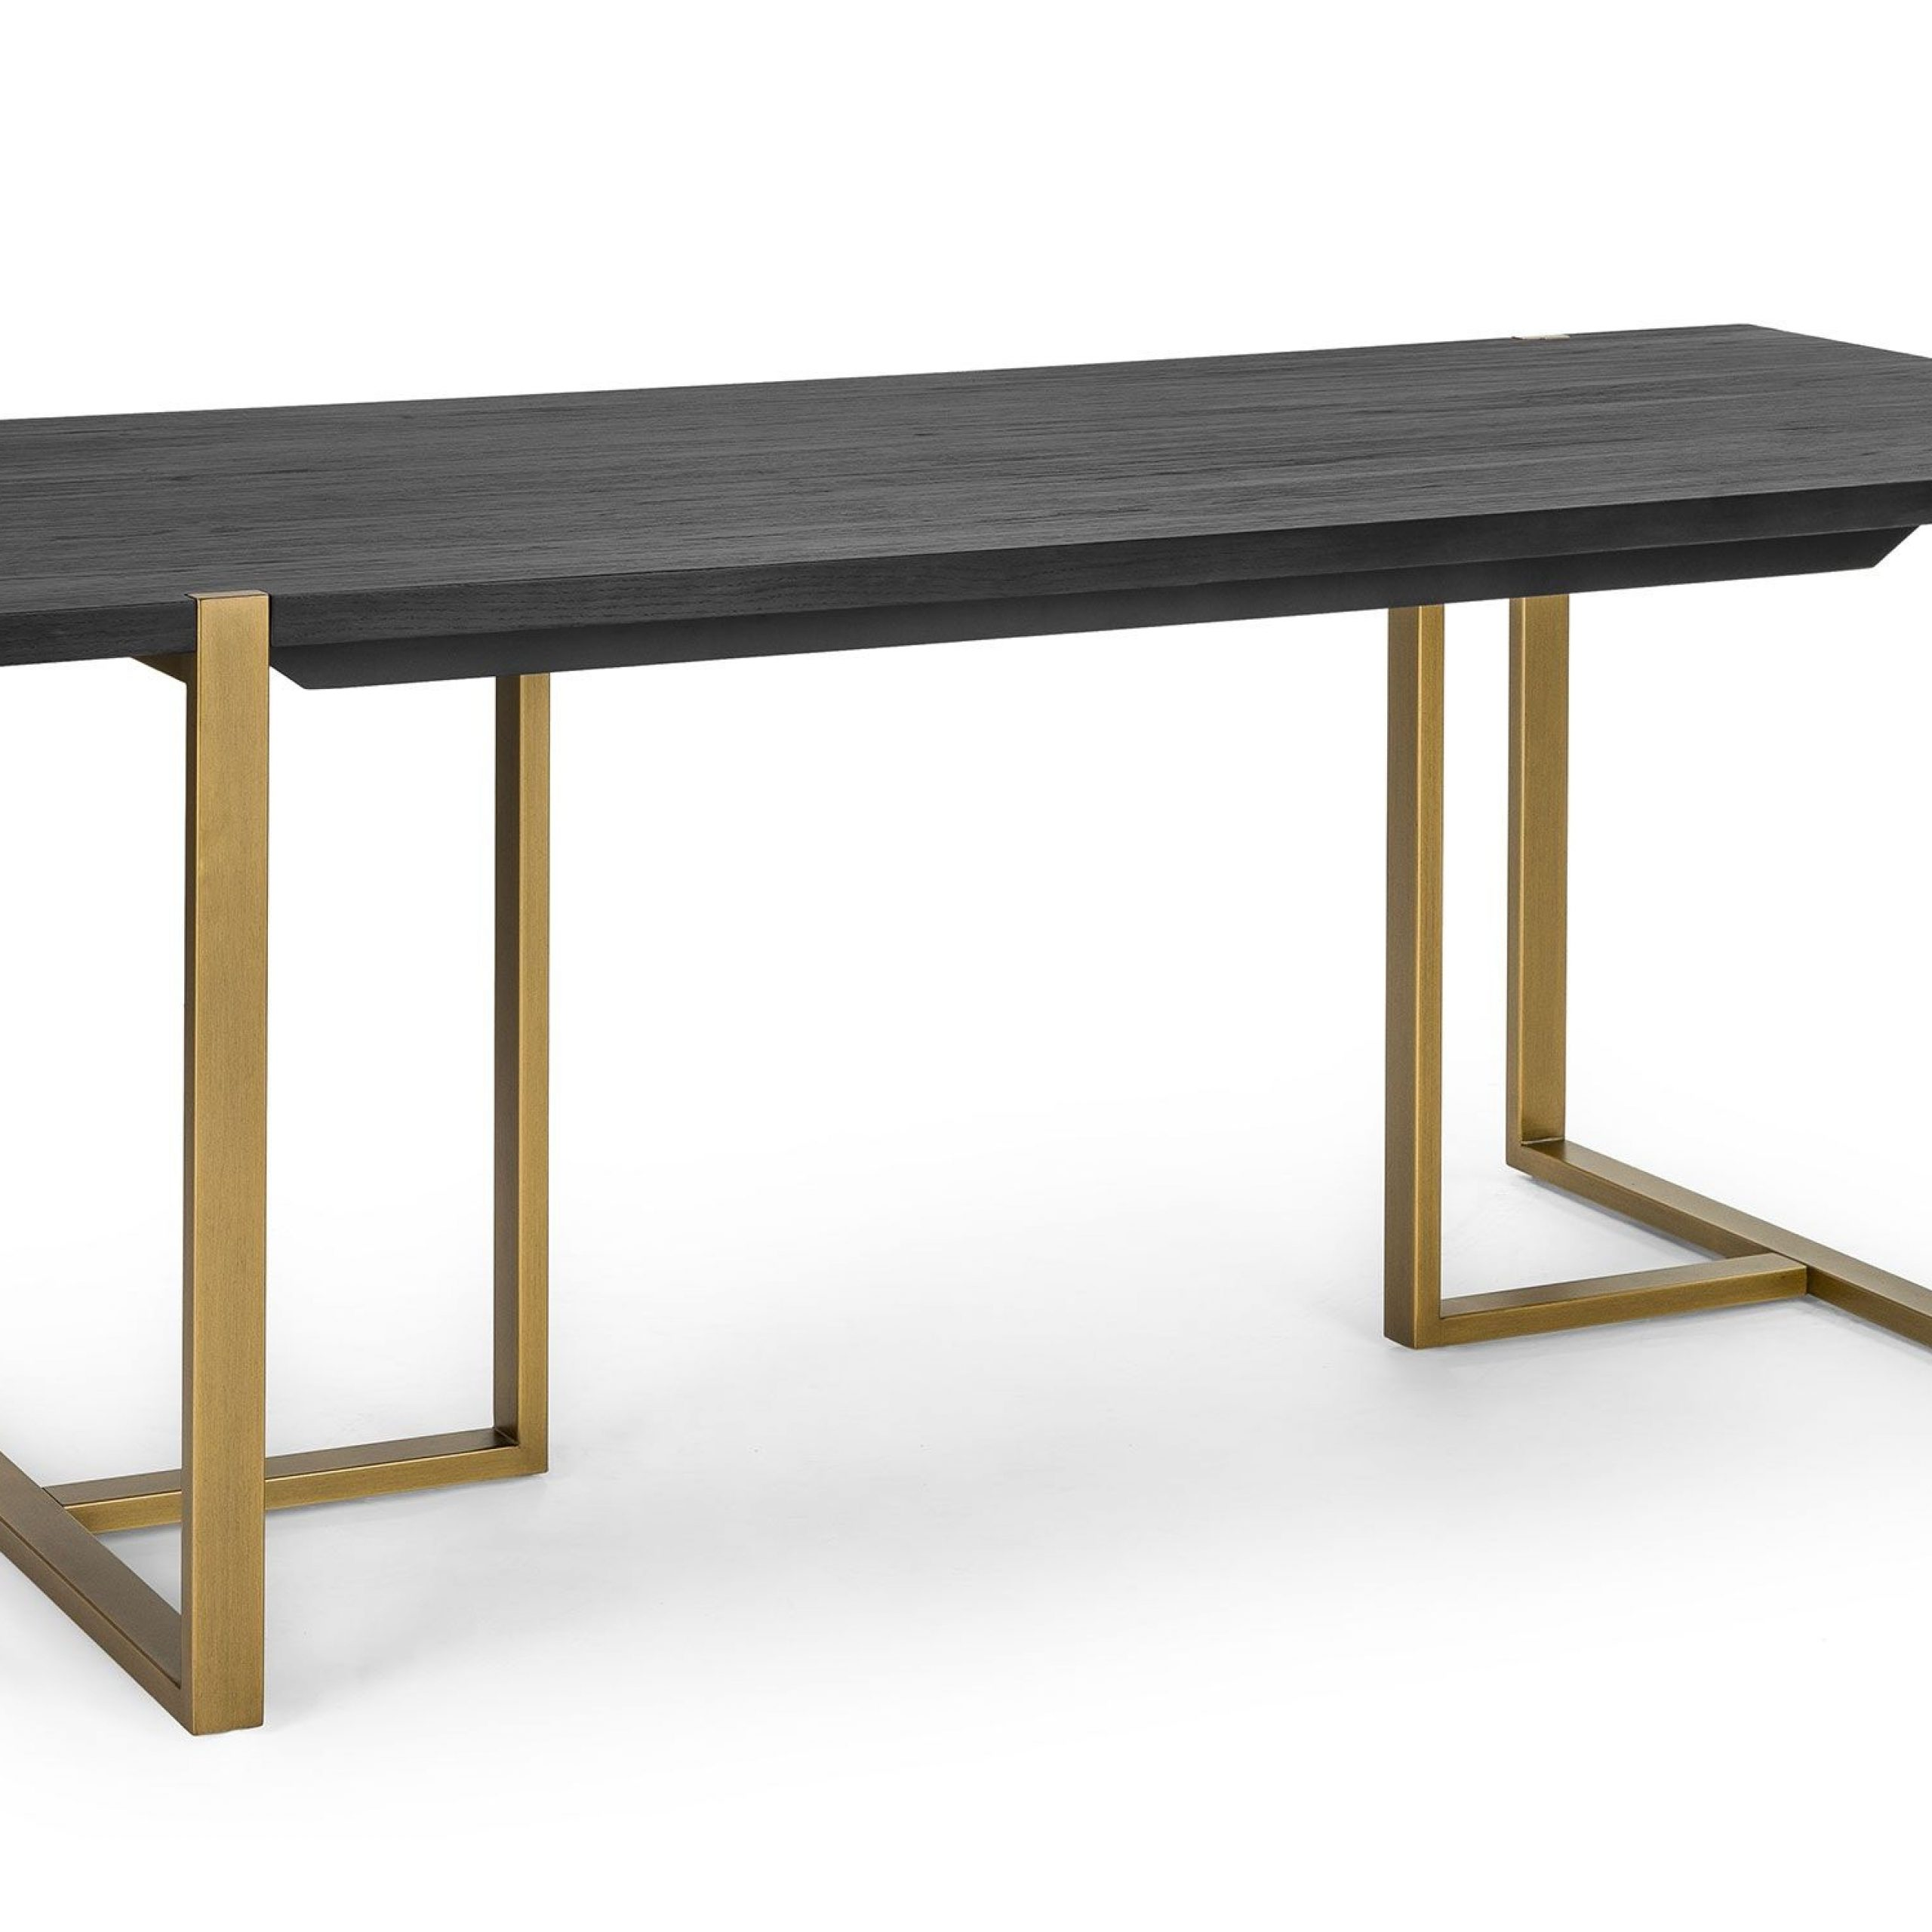 Furniture Design, Modern Throughout Frosted Glass Modern Dining Tables With Grey Finish Metal Tapered Legs (View 7 of 30)